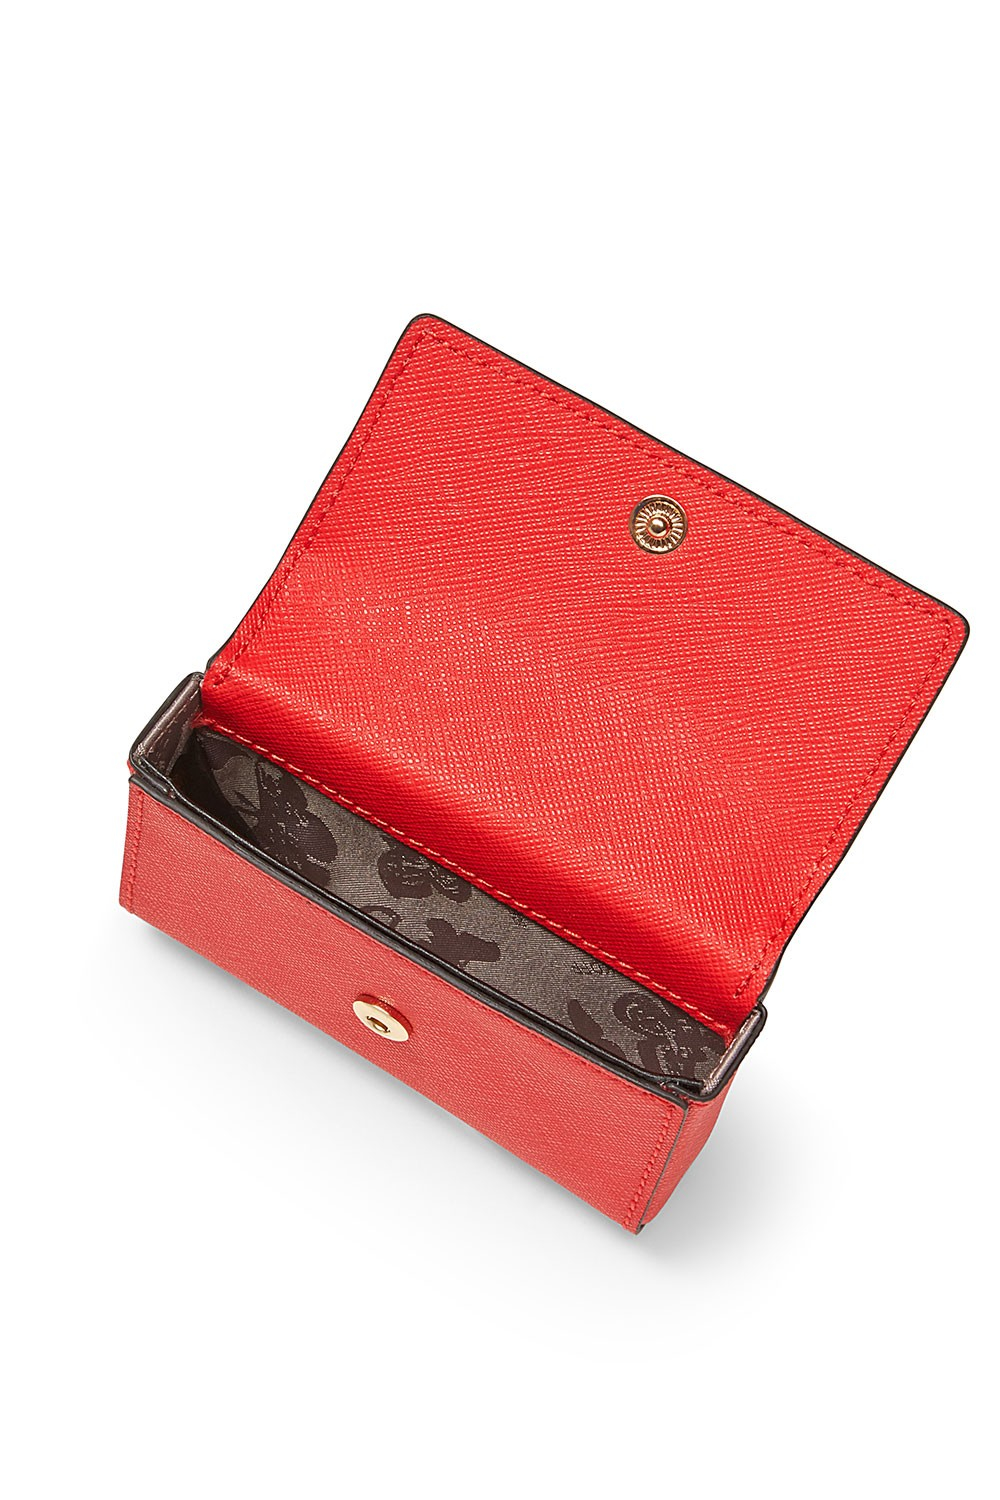 Fossil Business Card Holder | Best Business Cards